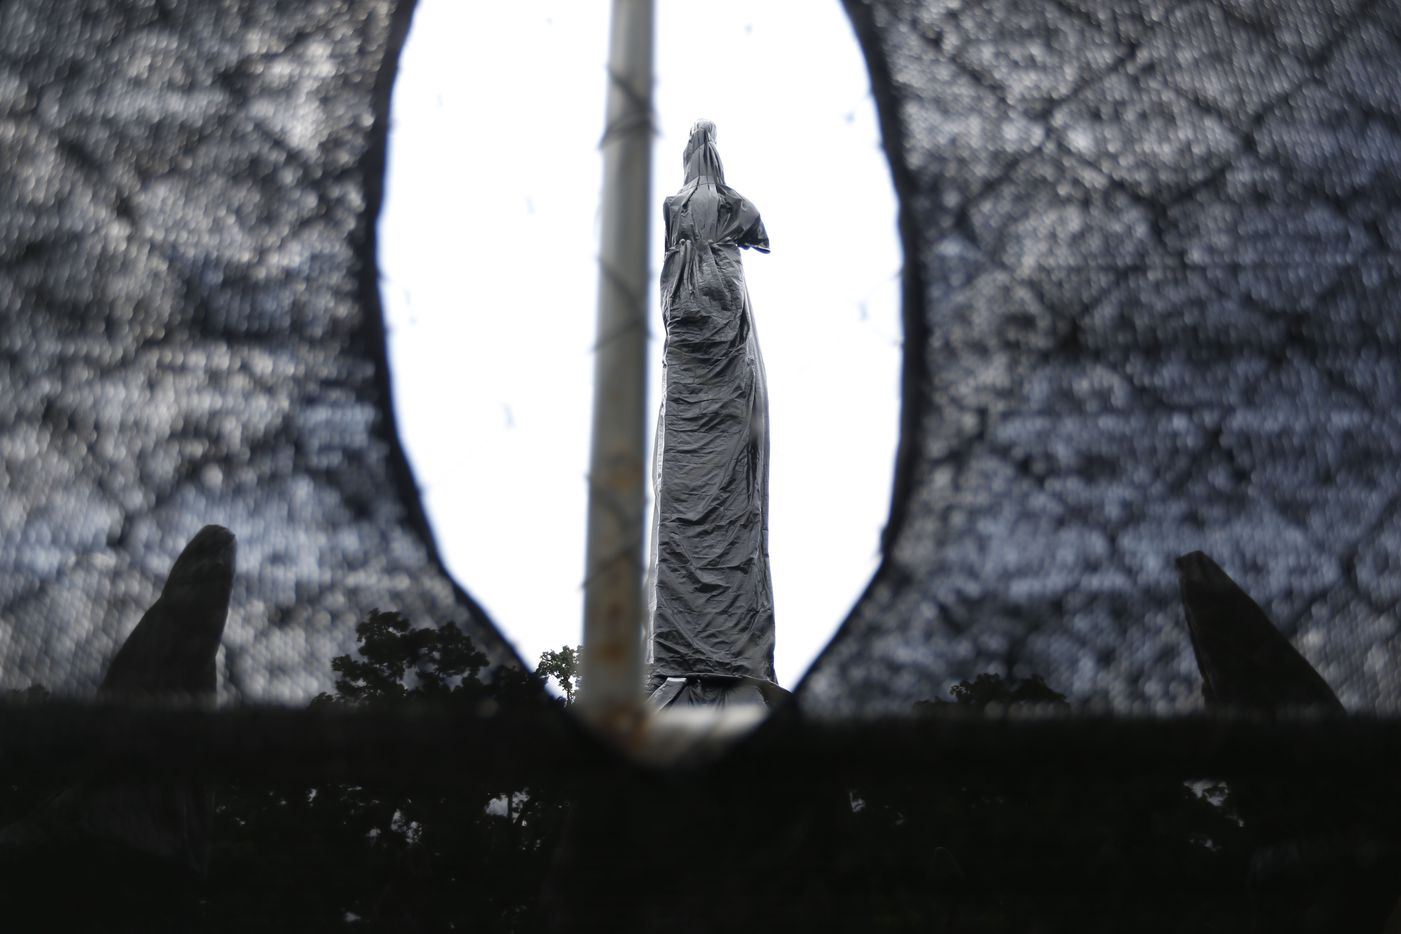 The statues and bases making up the Confederate War Memorial are wrapped in black plastic on Monday, May 20, 2019 in Dallas. The only things preventing the City of Dallas from removing the Confederate War Memorial from its location near City Hall and Dallas' convention center are a lawsuit and a request for a temporary restraining order filed in district court. (Michael Hamtil/The Dallas Morning News)